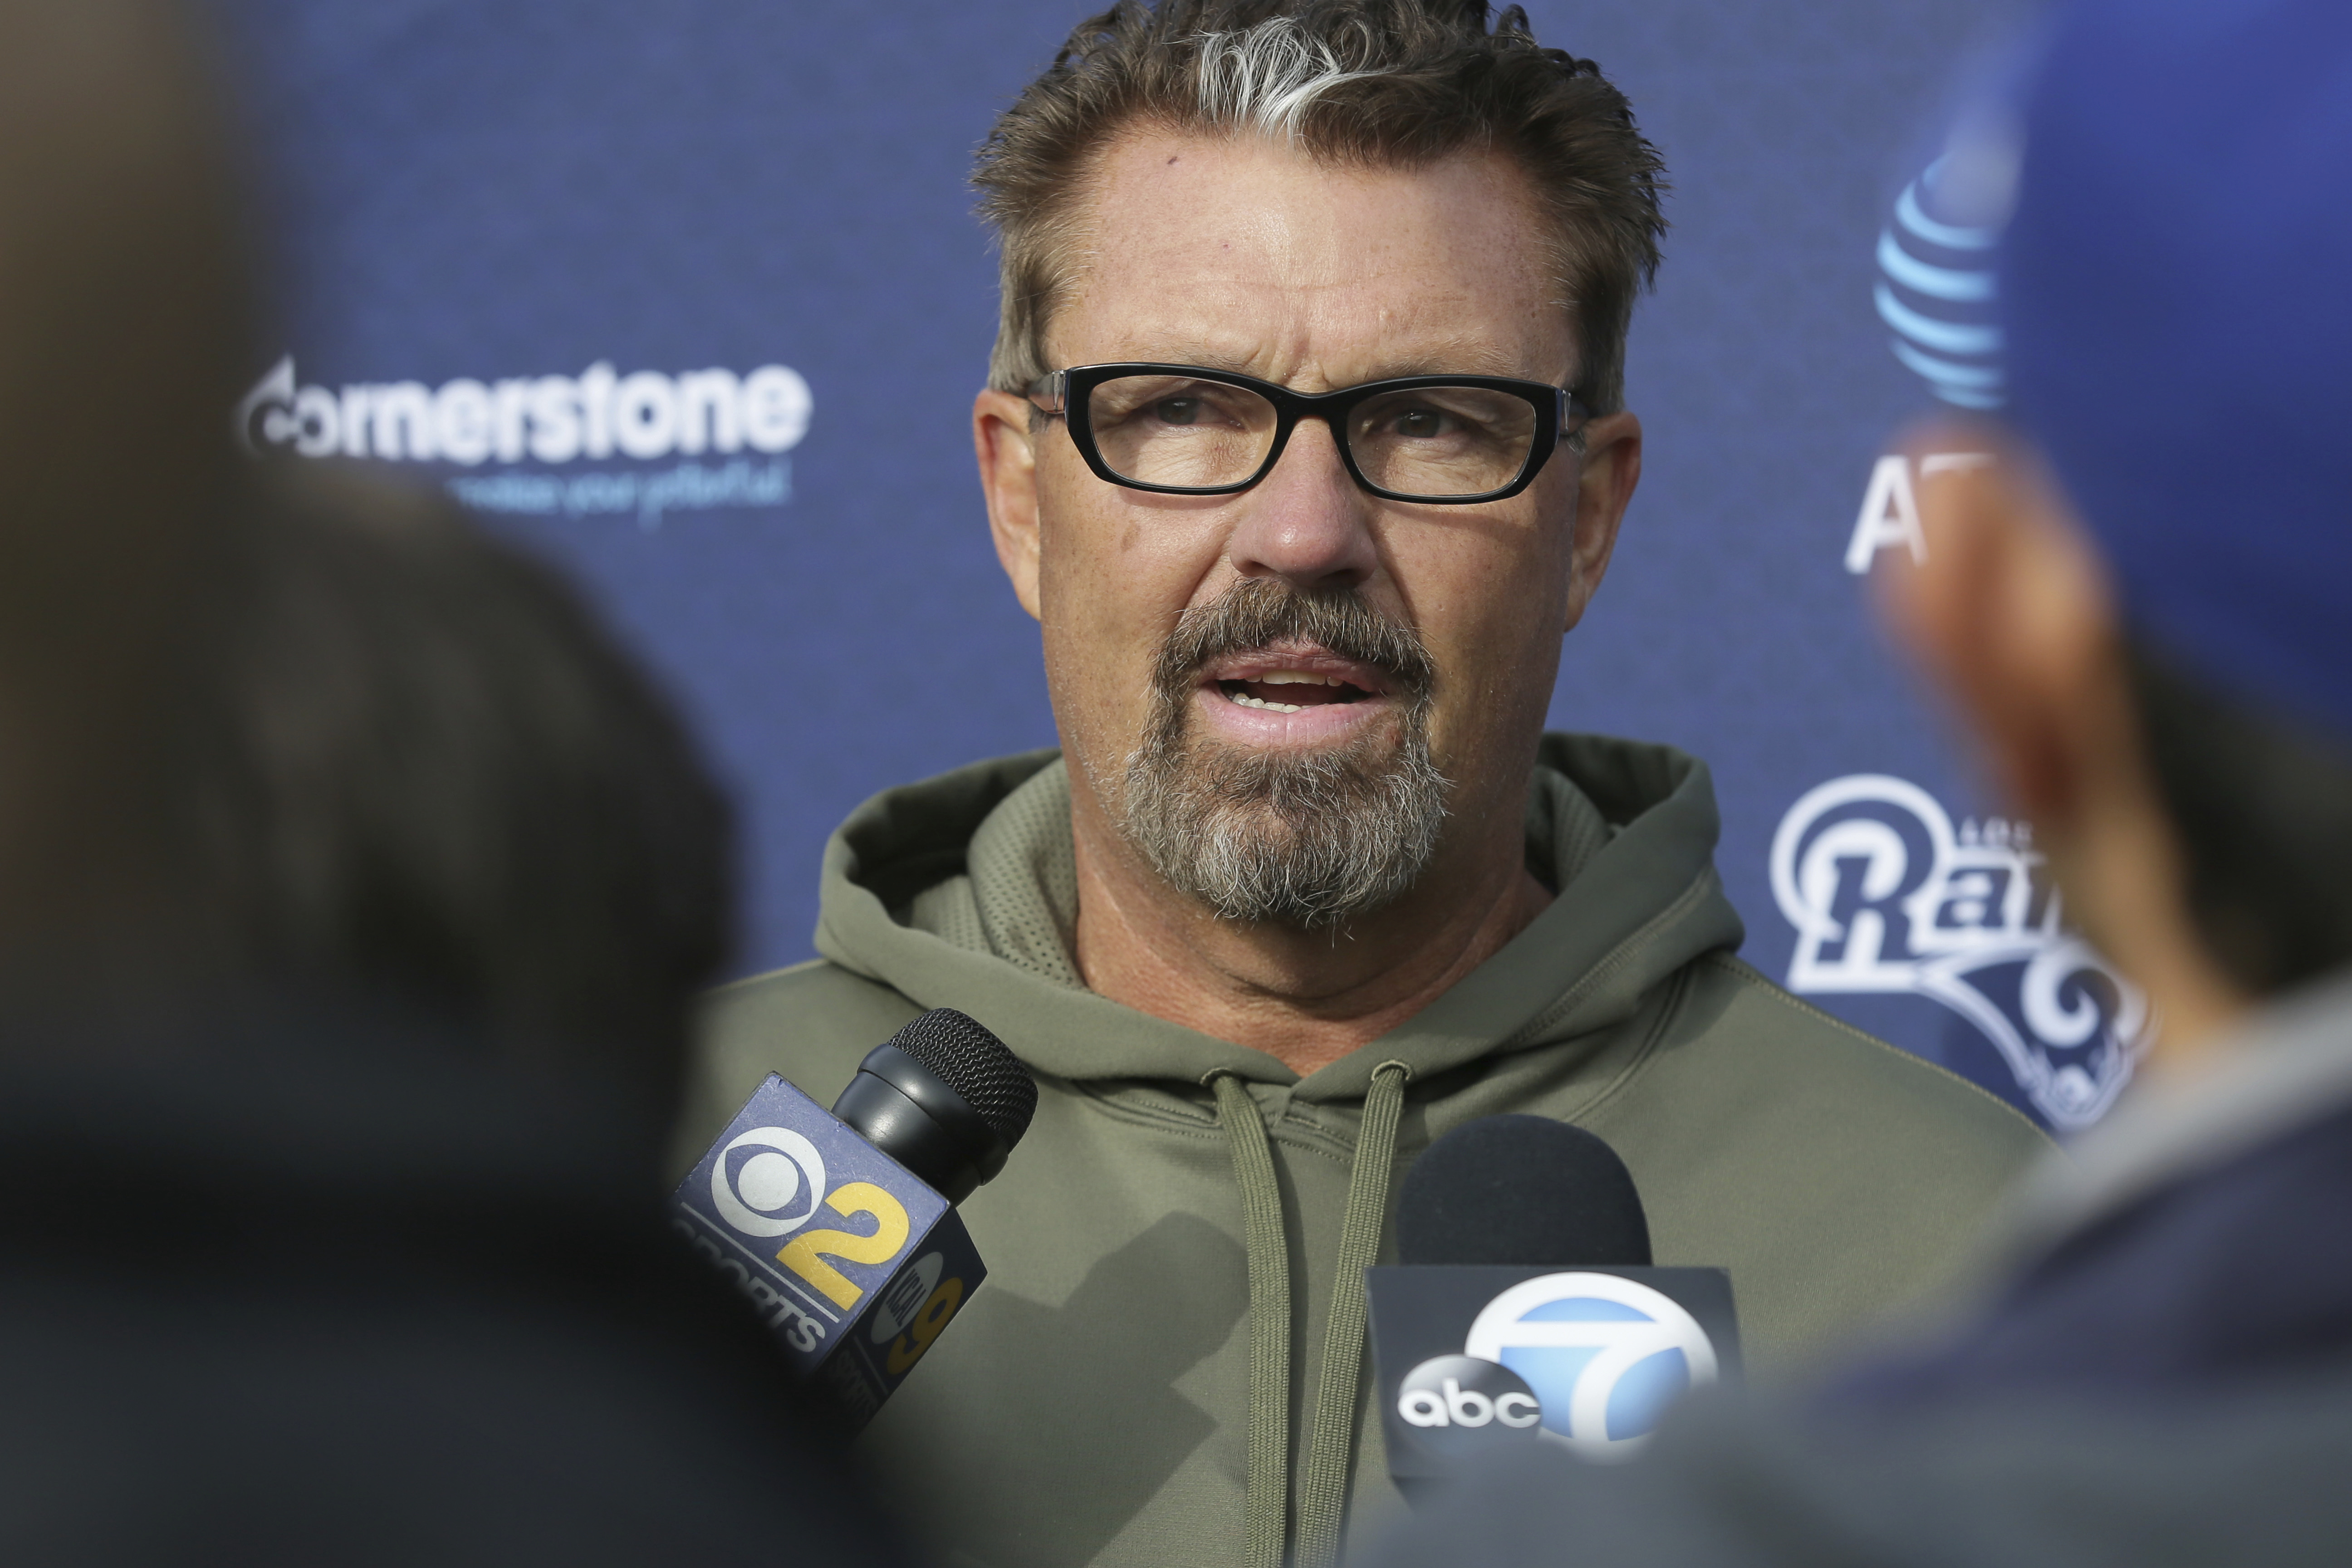 FILE - In a Friday Oct. 21, 2016 file photo, Los Angeles Rams defensive coordinator Gregg Williams speaks to the media after a practice session at Pennyhill Park Hotel in Bagshot, England. When the New Orleans Saints host the Rams on Sunday, Nov. 27, Will